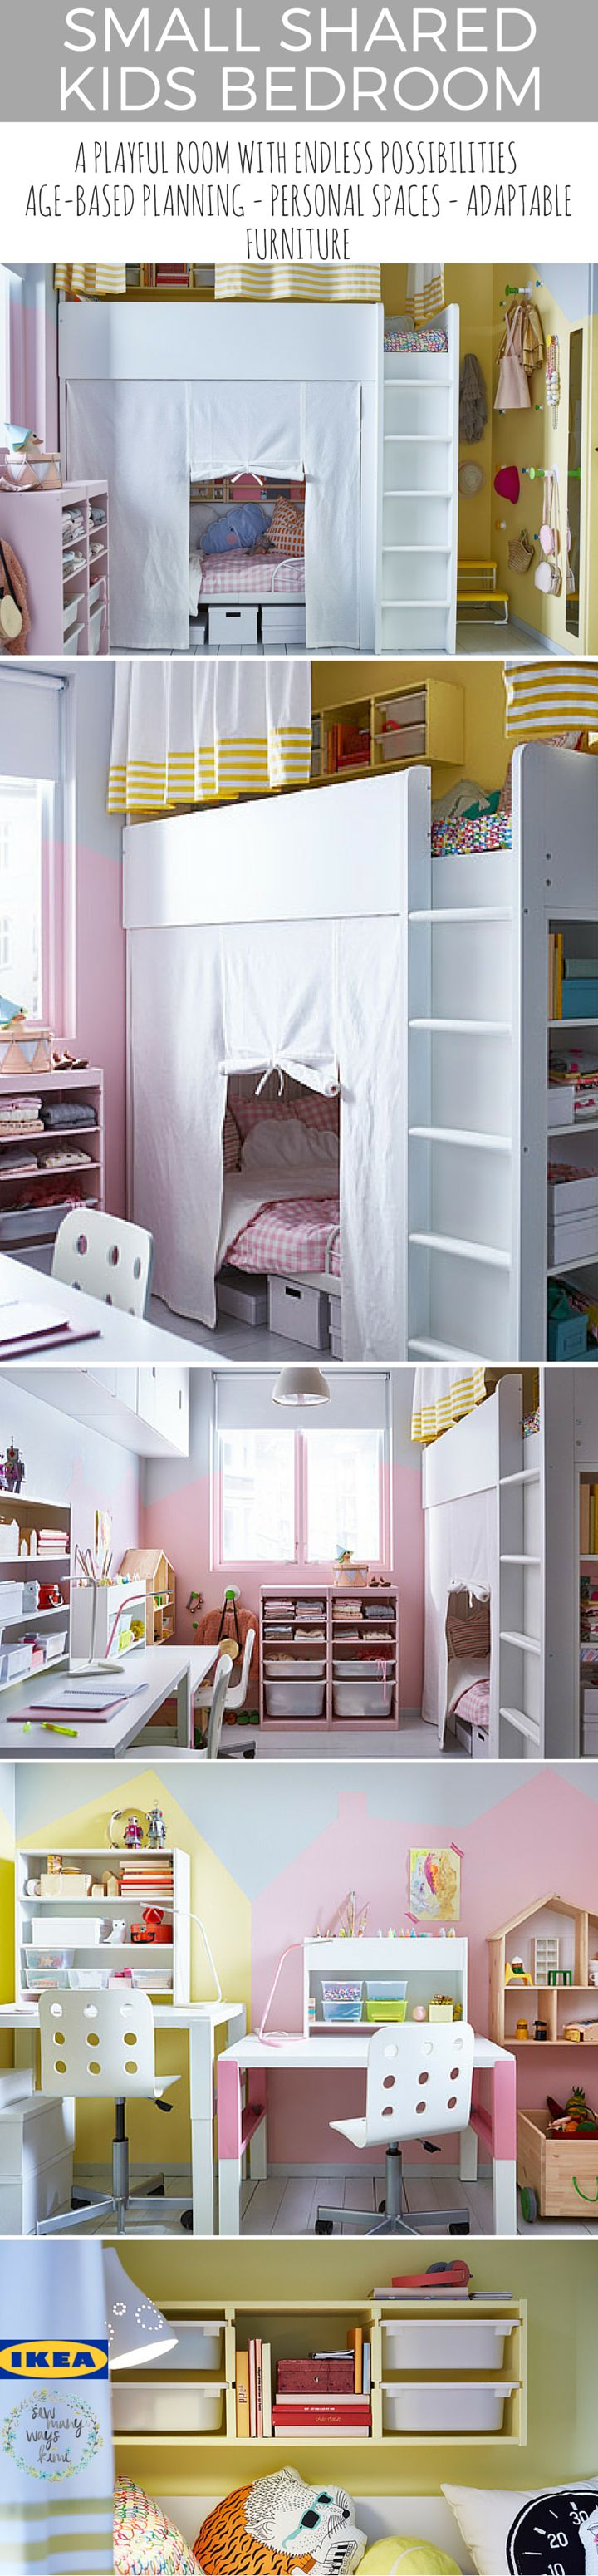 best 25 ikea girls room ideas on pinterest girls bedroom ideas ikea girls bedroom and girls bedroom storage